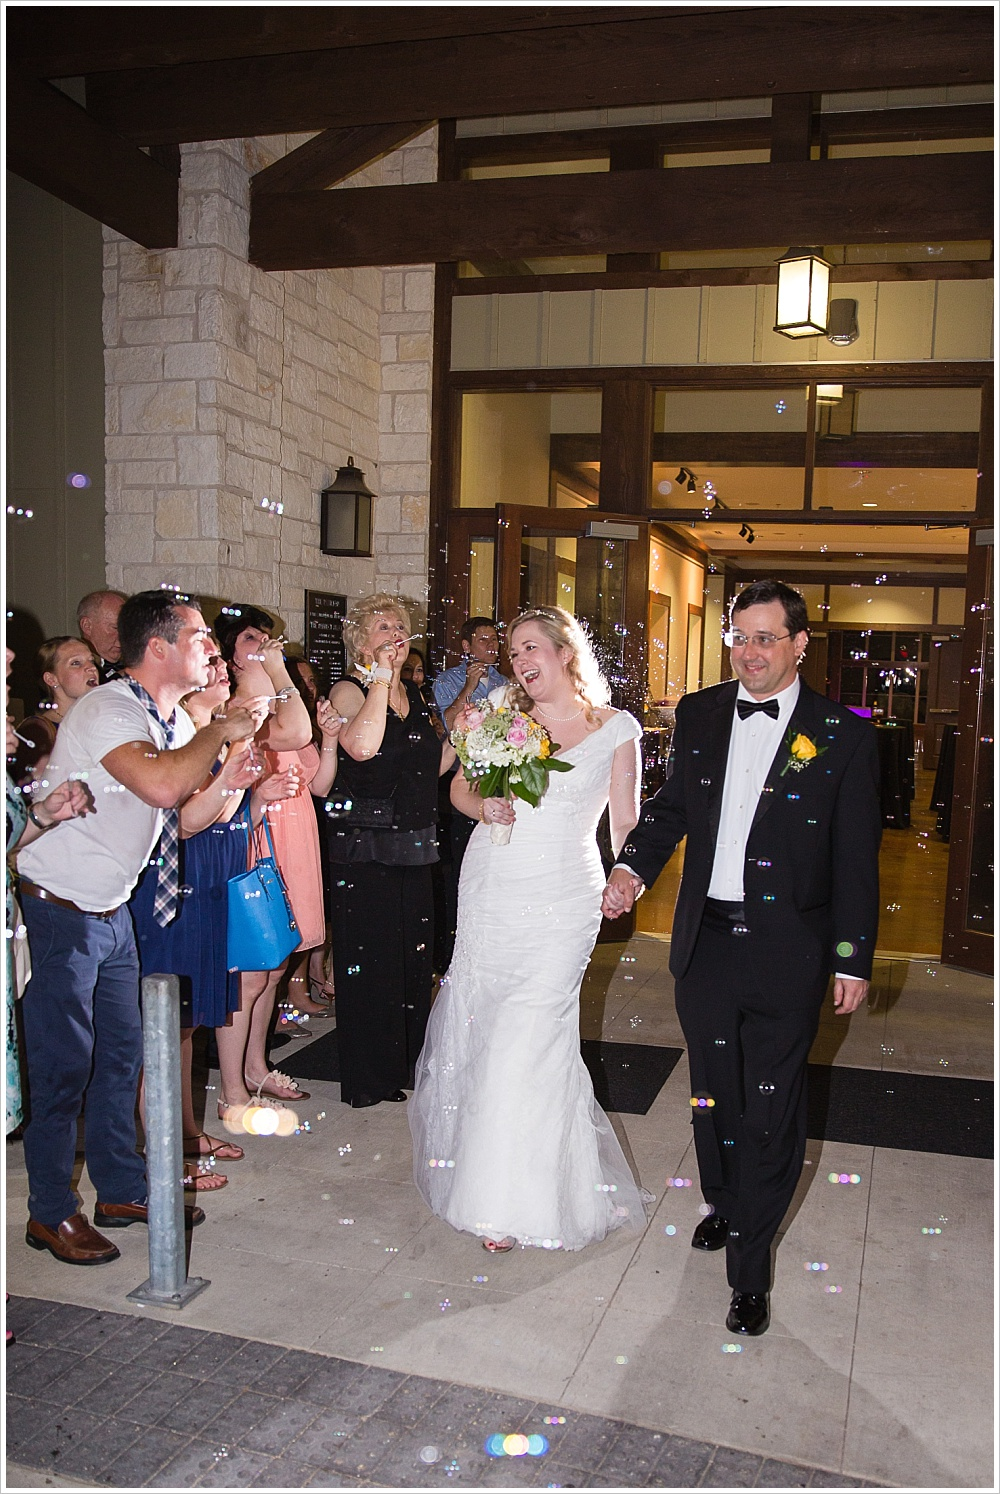 bubble exit as bride and groom leave | Carleen Bright Arboretum, Woodway, Texas | Jason & Melaina Photography